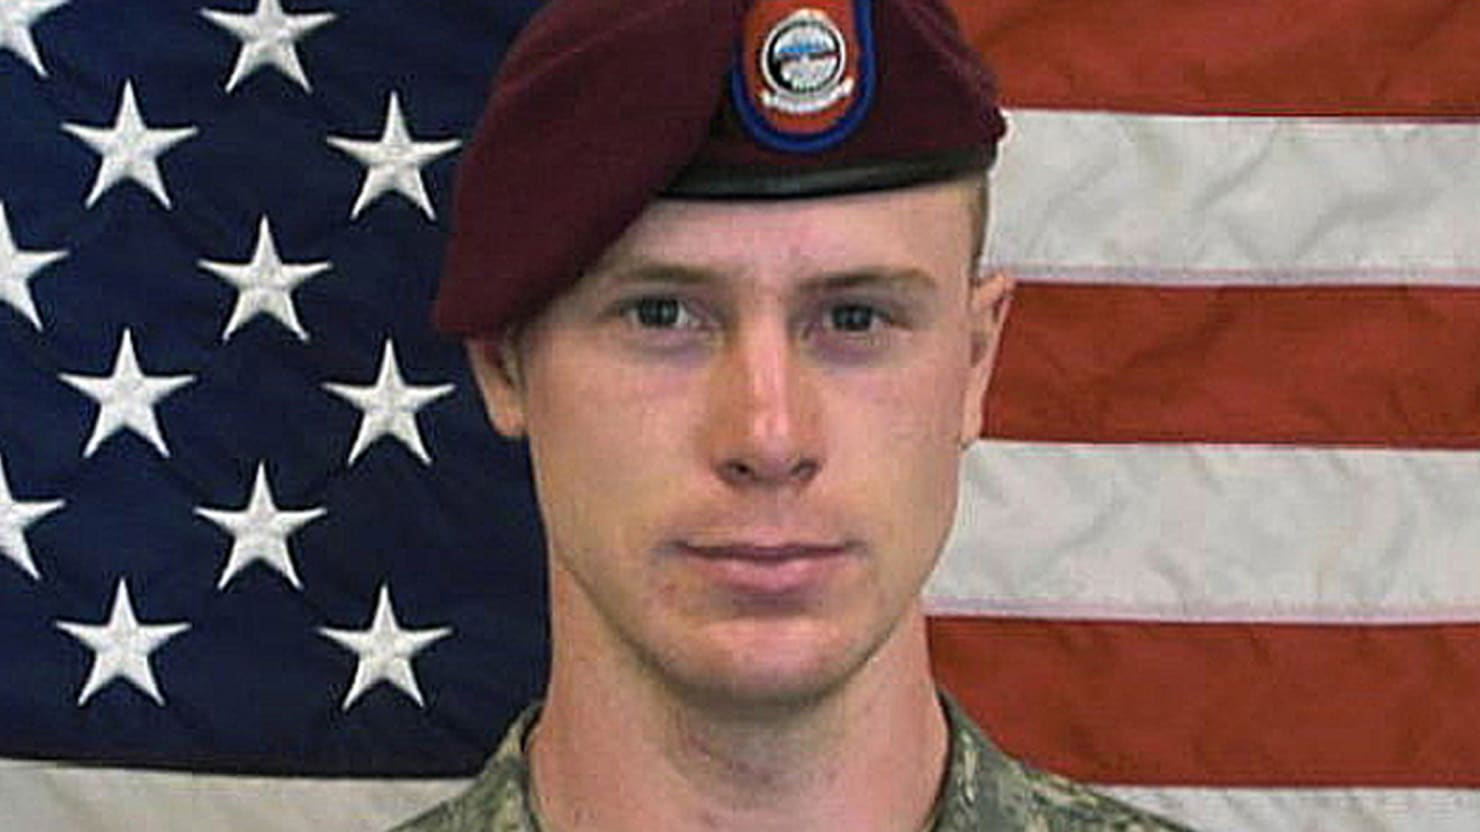 Here are the Taliban Terrorists Obama Released to Free POW Bowe Bergdahl